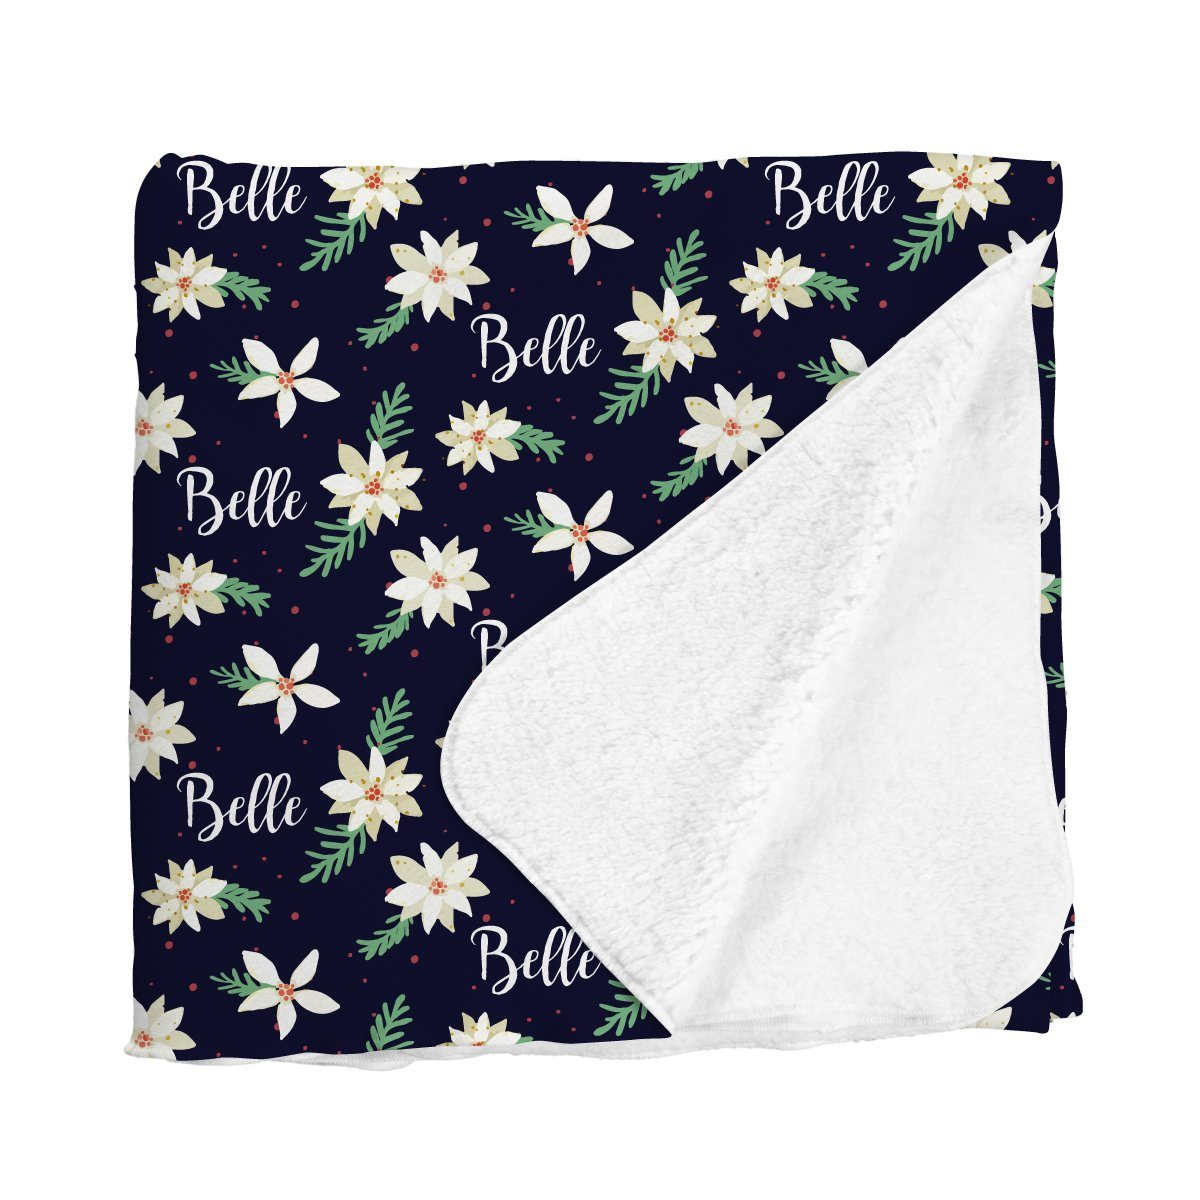 Belle's Holiday Poinsettia | Big Kid Blanket